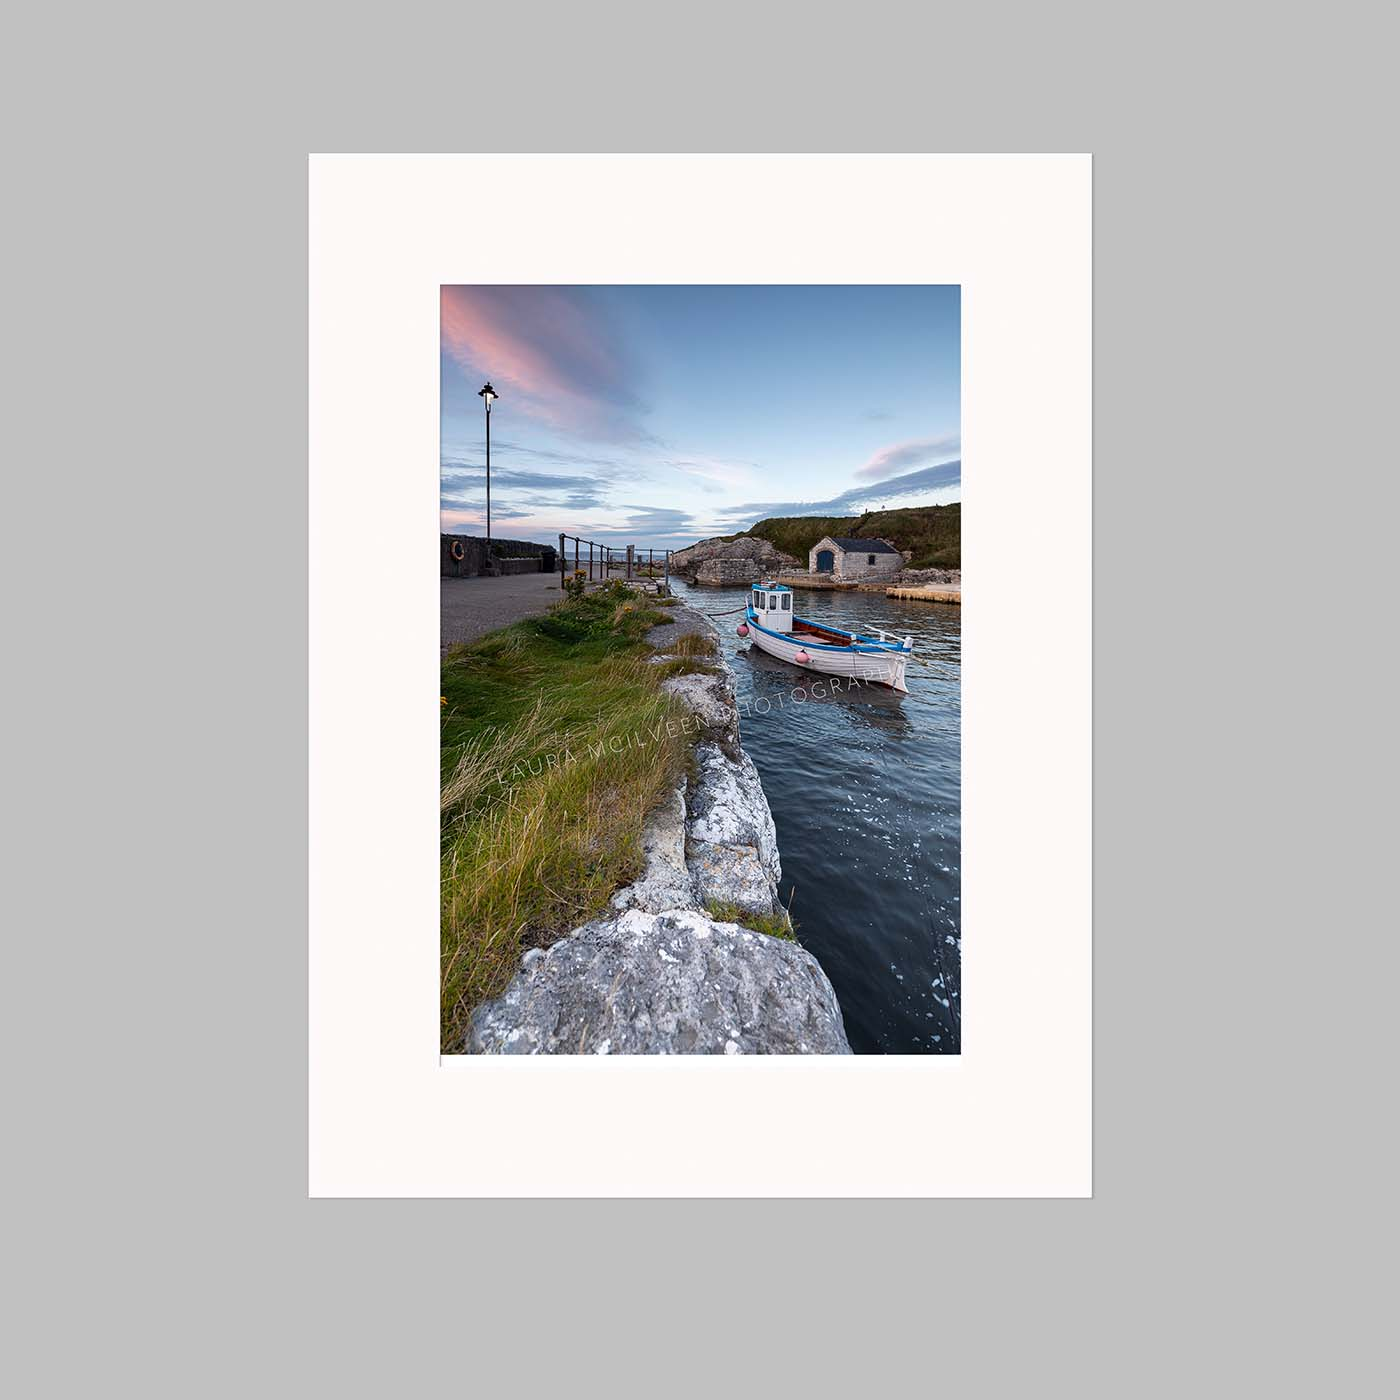 'Safe in the harbour' - Ballintoy Harbour